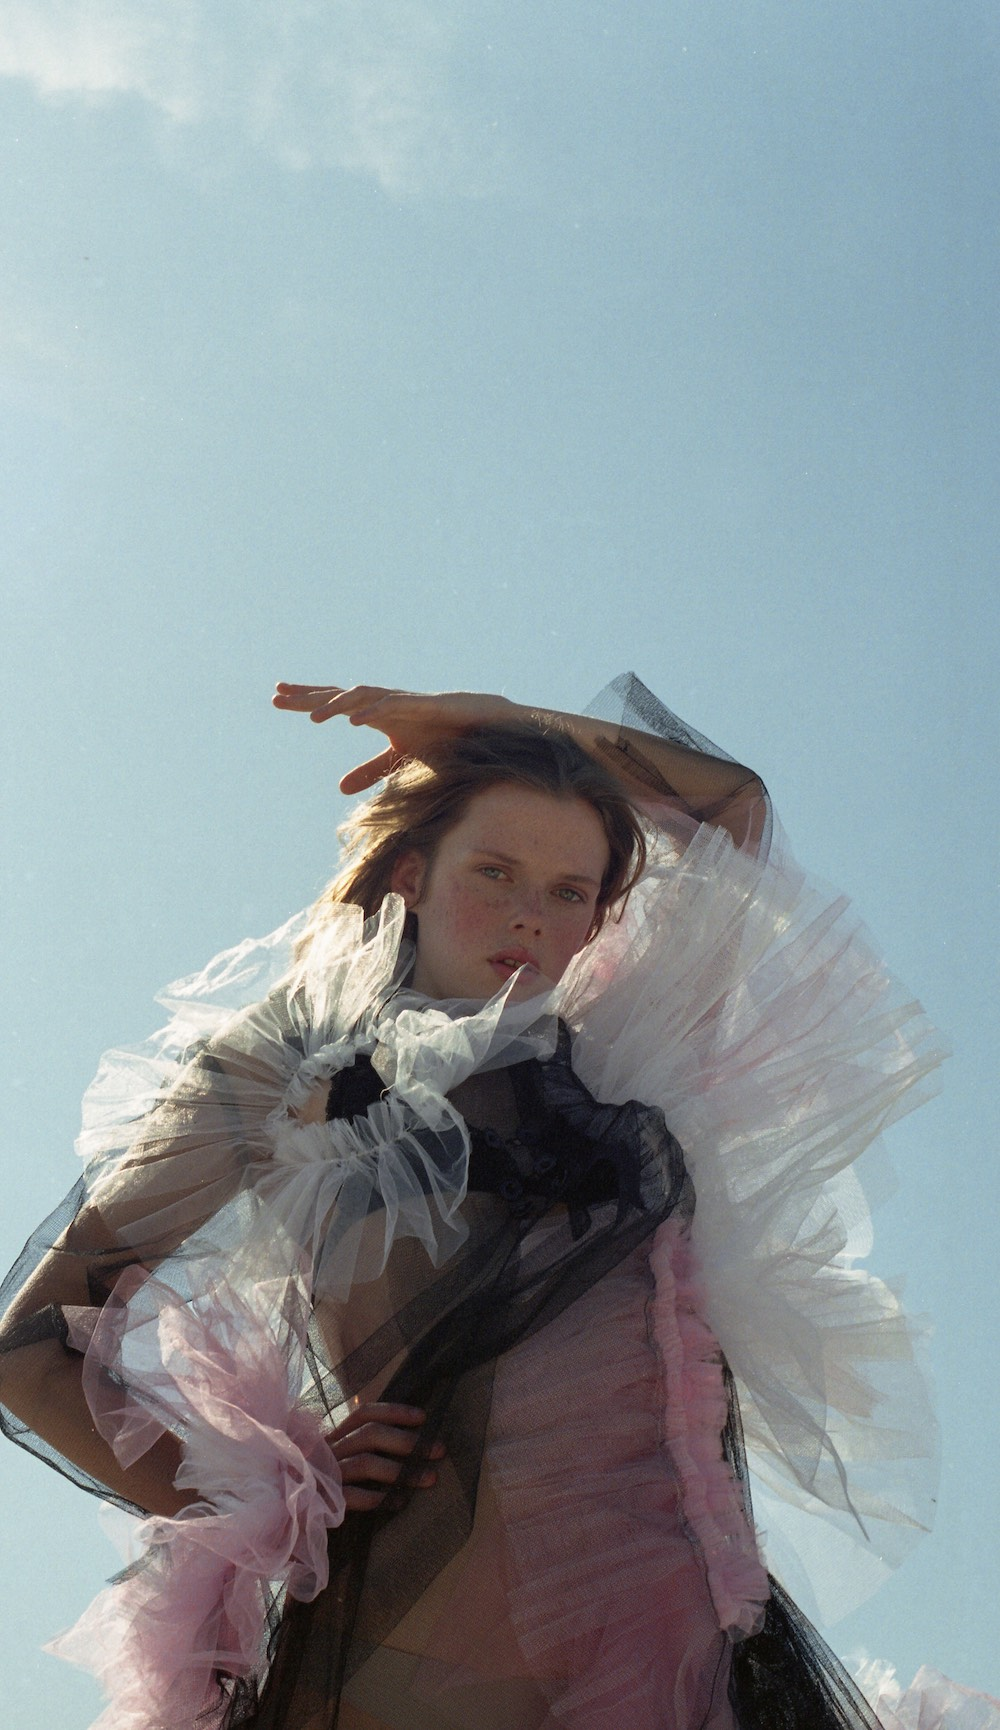 The Annual by BA (Hons) Creative Direction for Fashion graduate Caroline Wong.